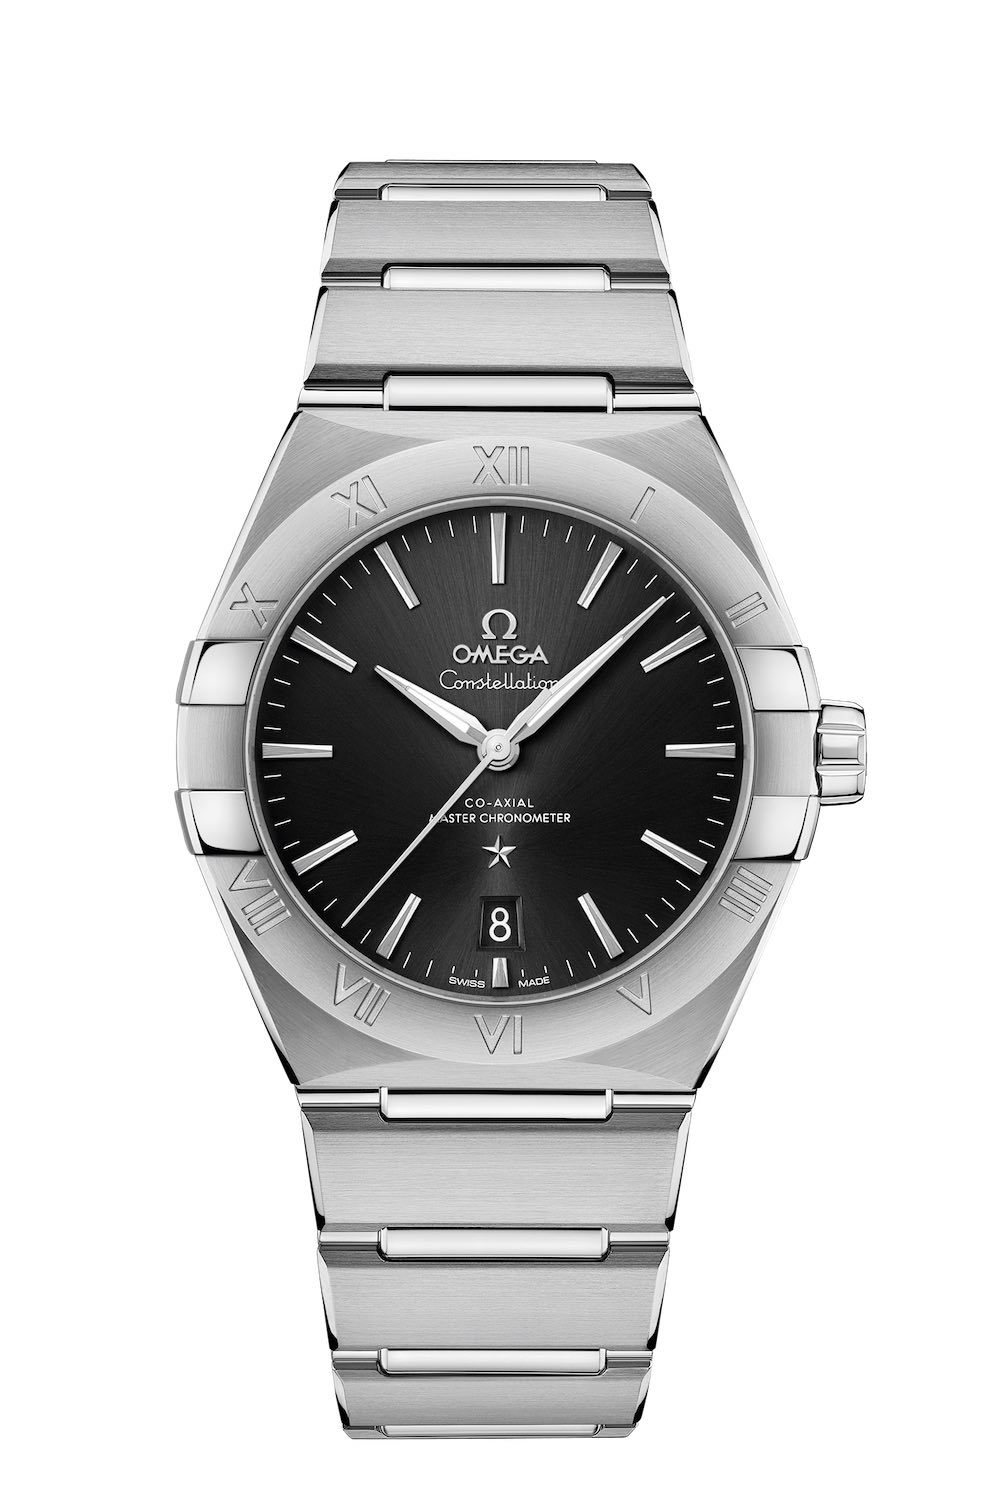 omega-constellation-13110392001001-1-product-zoom